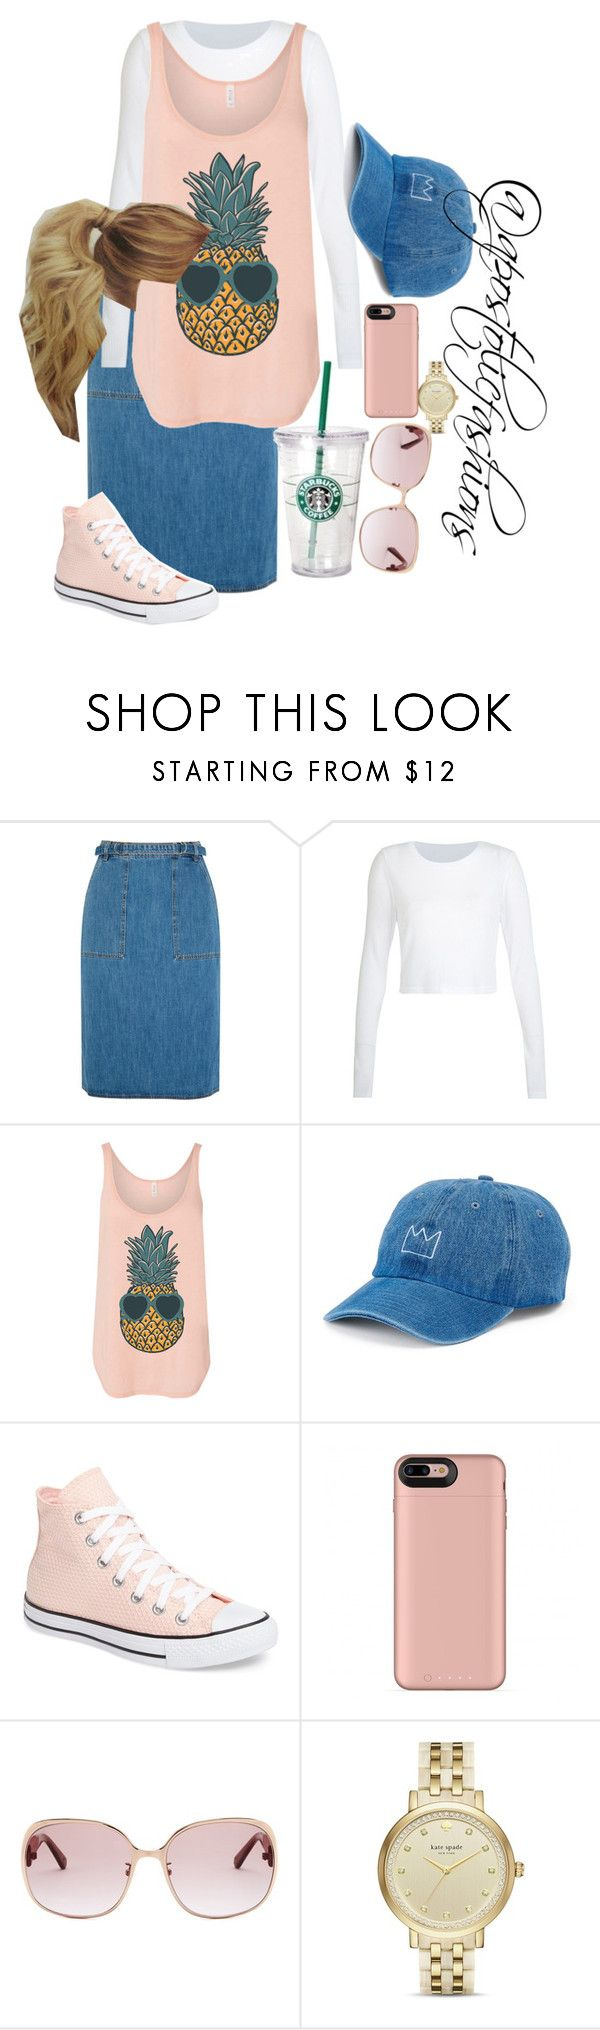 """Apostolic Fashions #1806"" by apostolicfashions ❤ liked on Polyvore featuring M.i.h Jeans, SO, Converse, Loewe and Kate Spade"